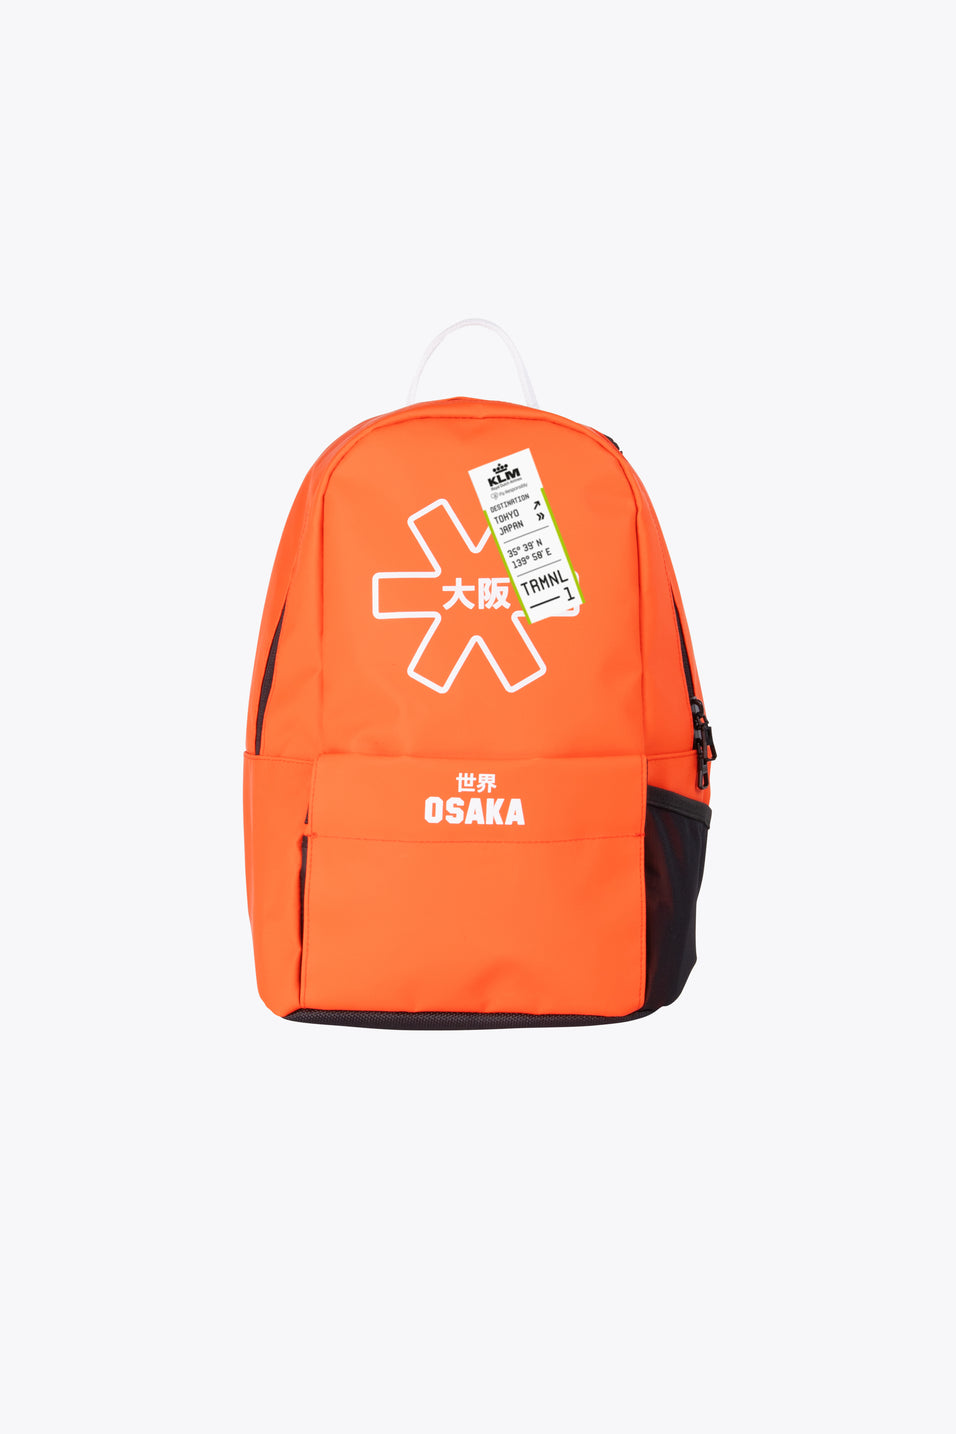 osaka backpack for junior hockey players